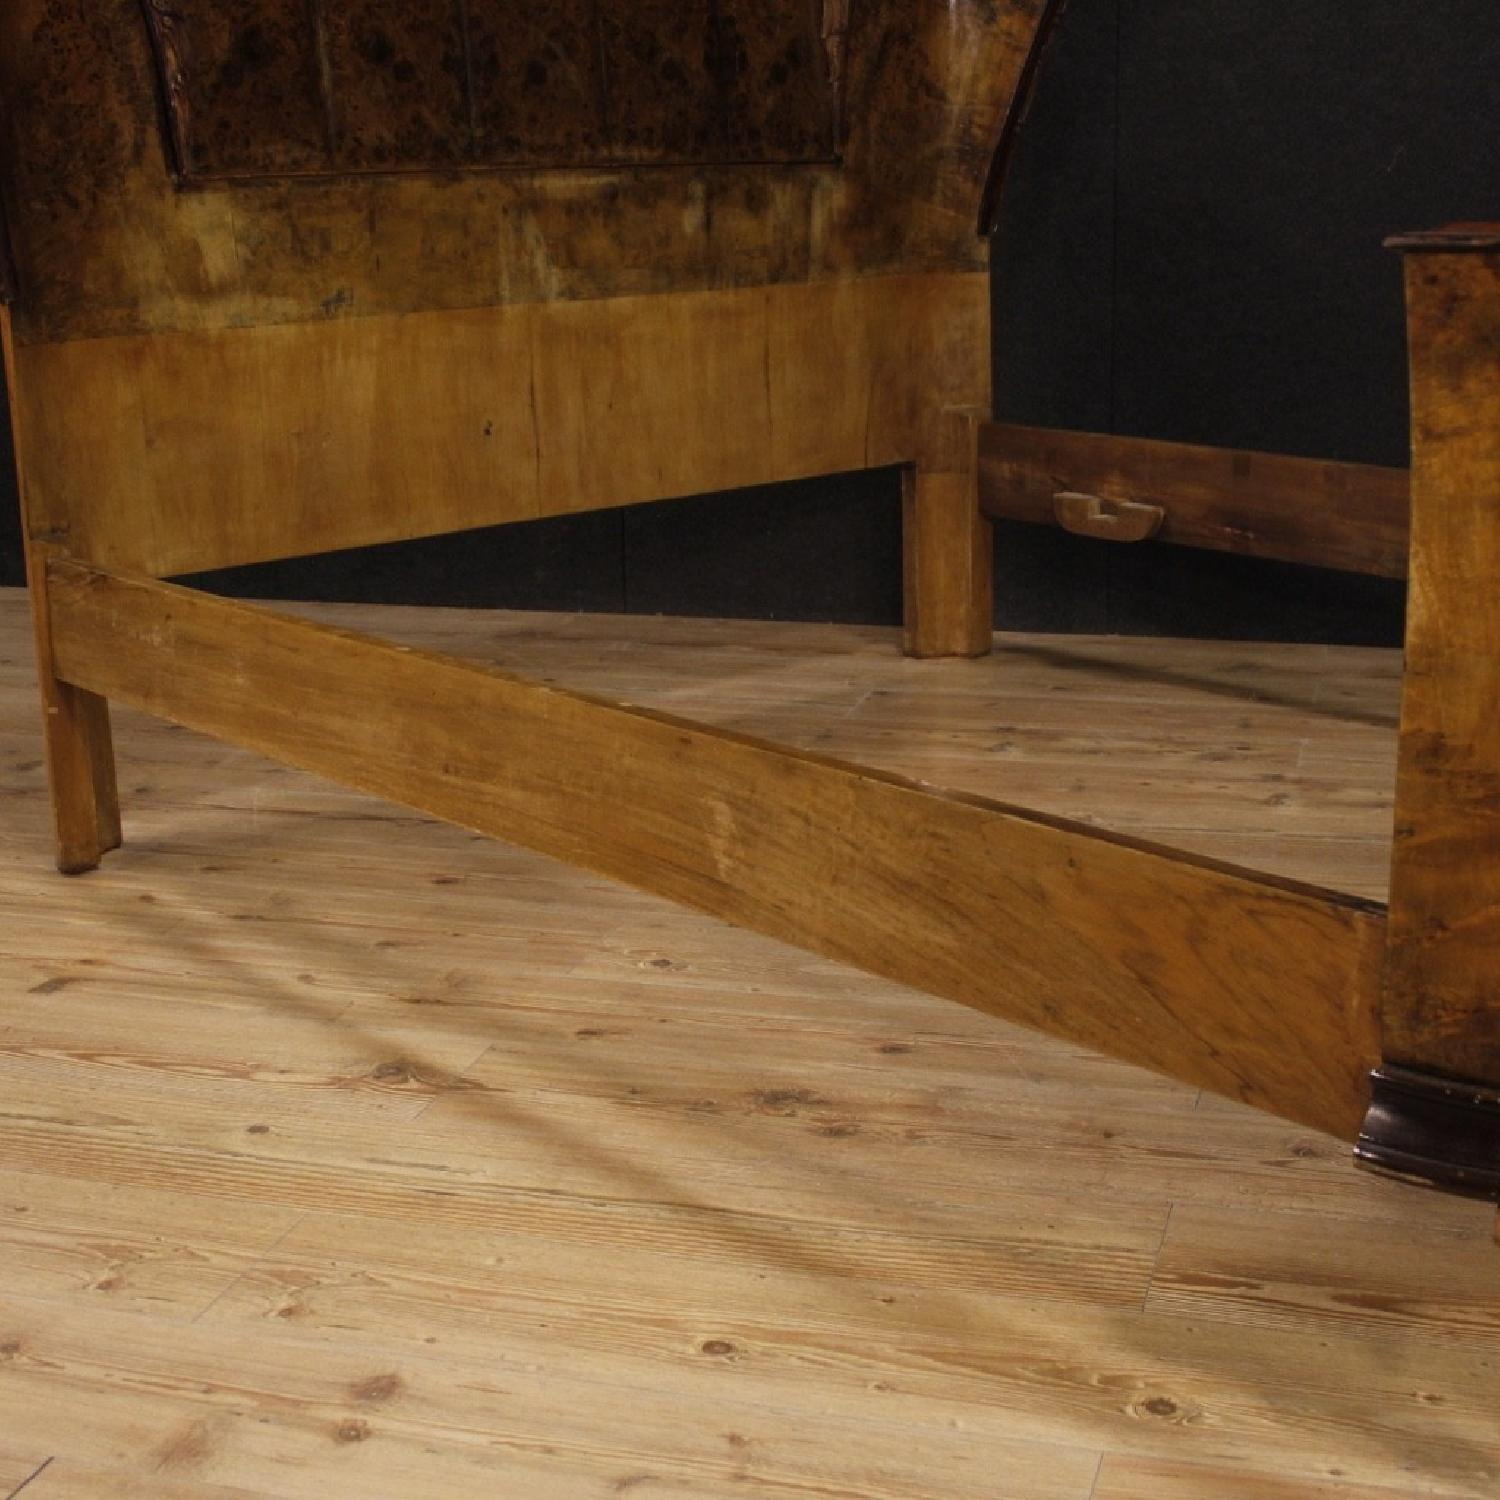 20th Century Cherry, Beech, Burl Walnut Italian Double Bed-10